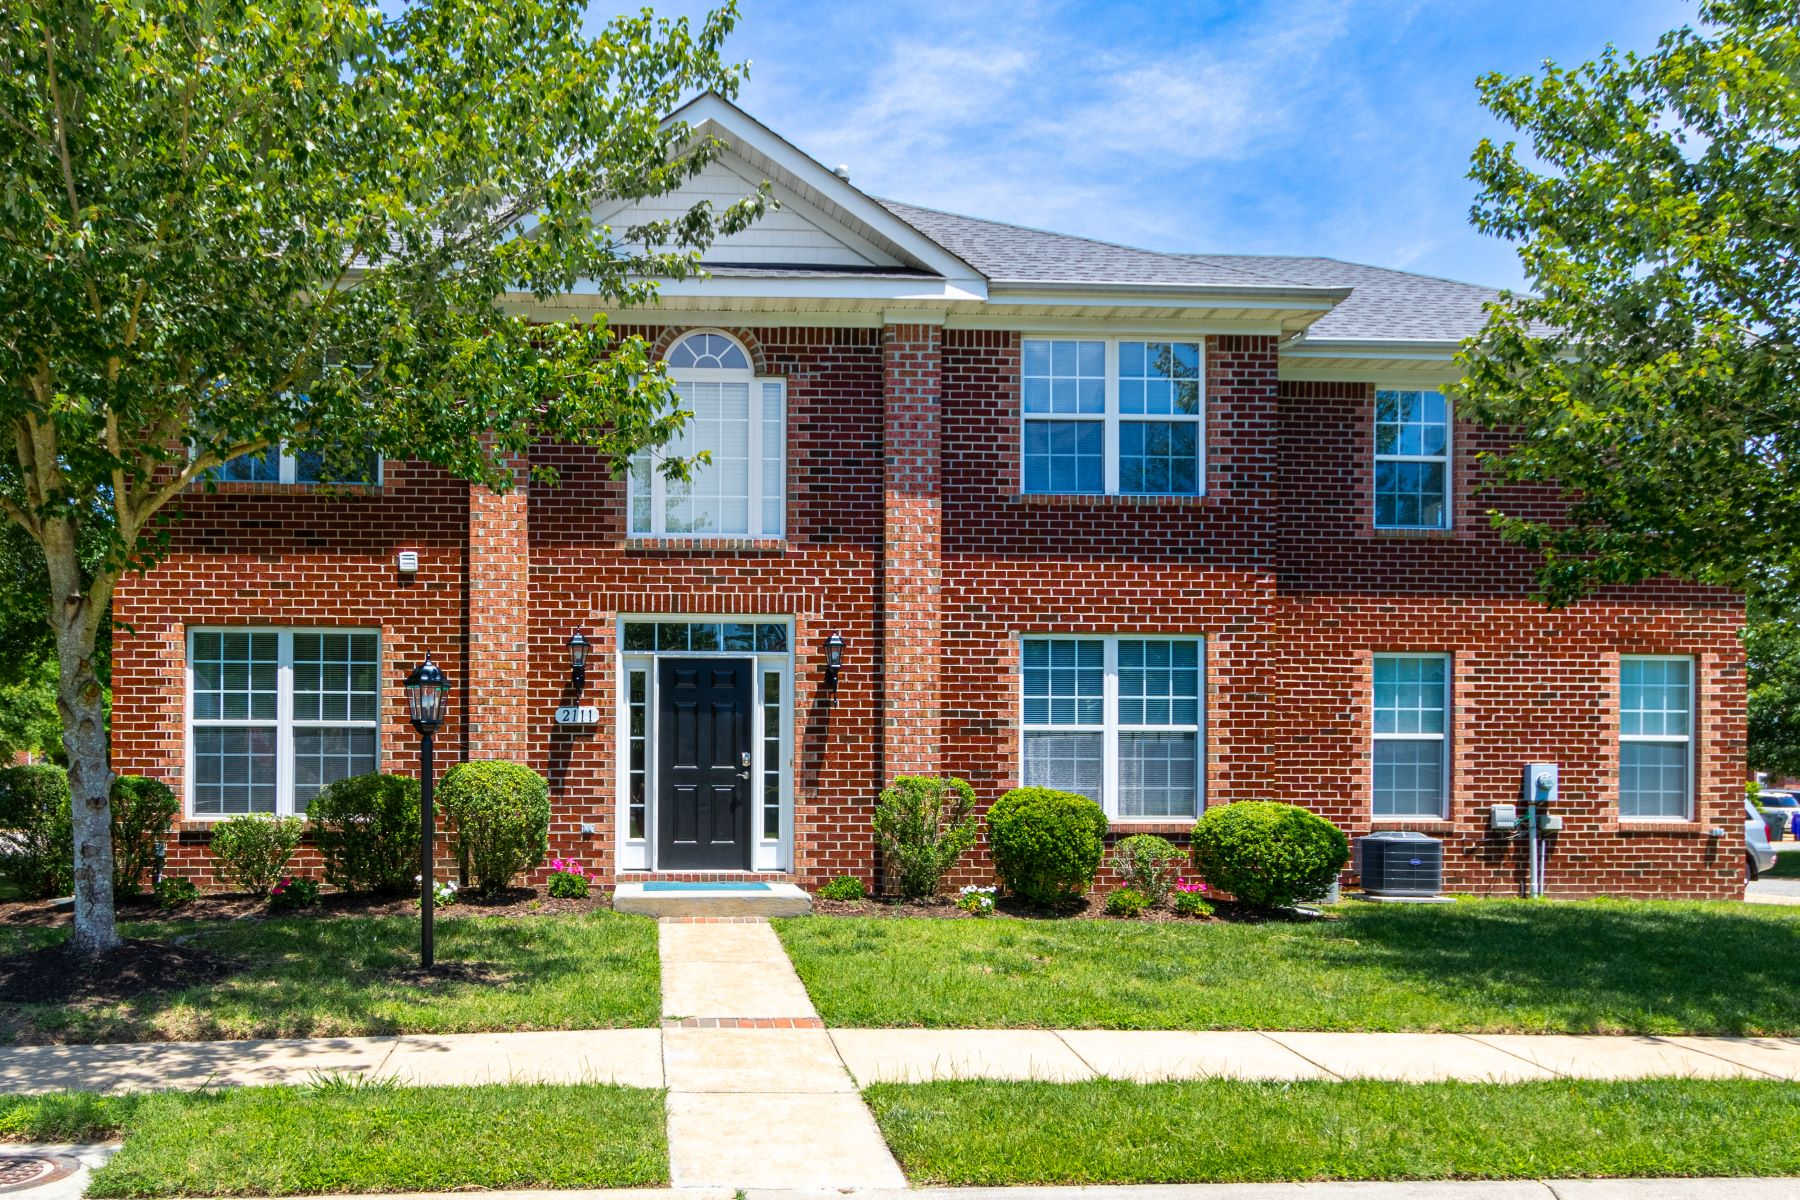 Single Family Homes for Sale at Harbour View 2111 Soundings Crescent Ct Suffolk, Virginia 23435 United States